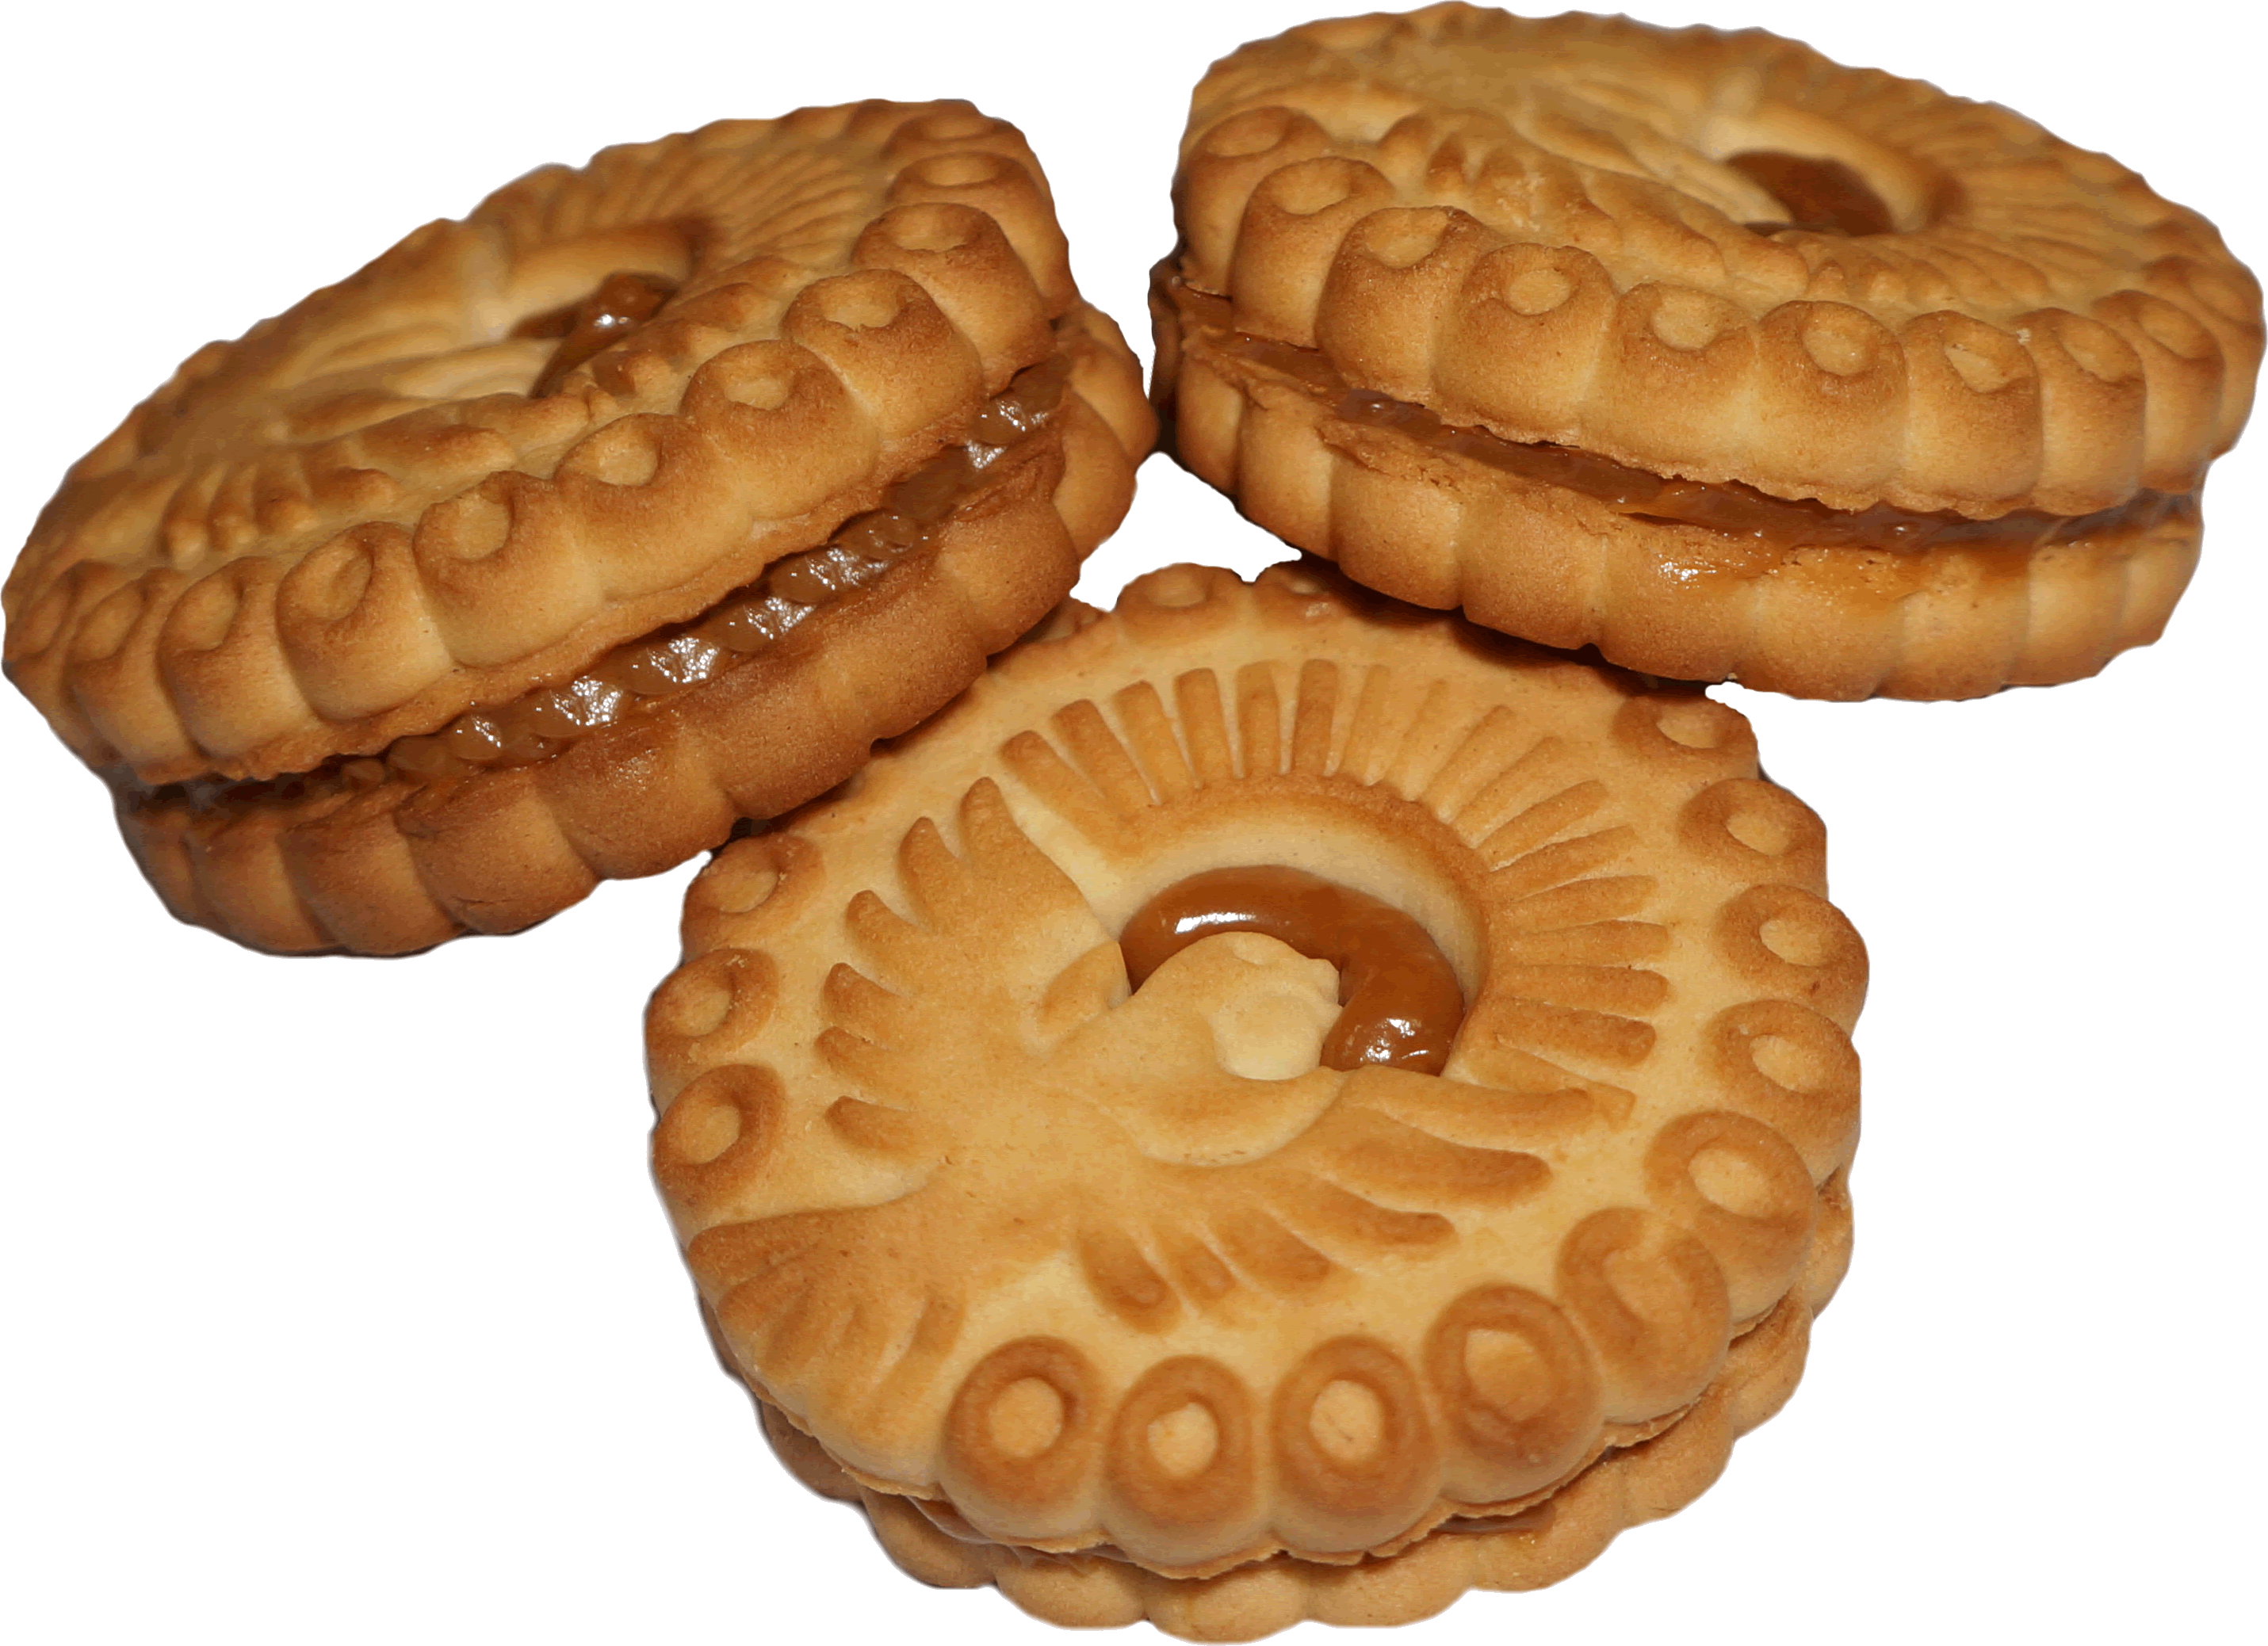 Download Cookies PNG Image for Free.